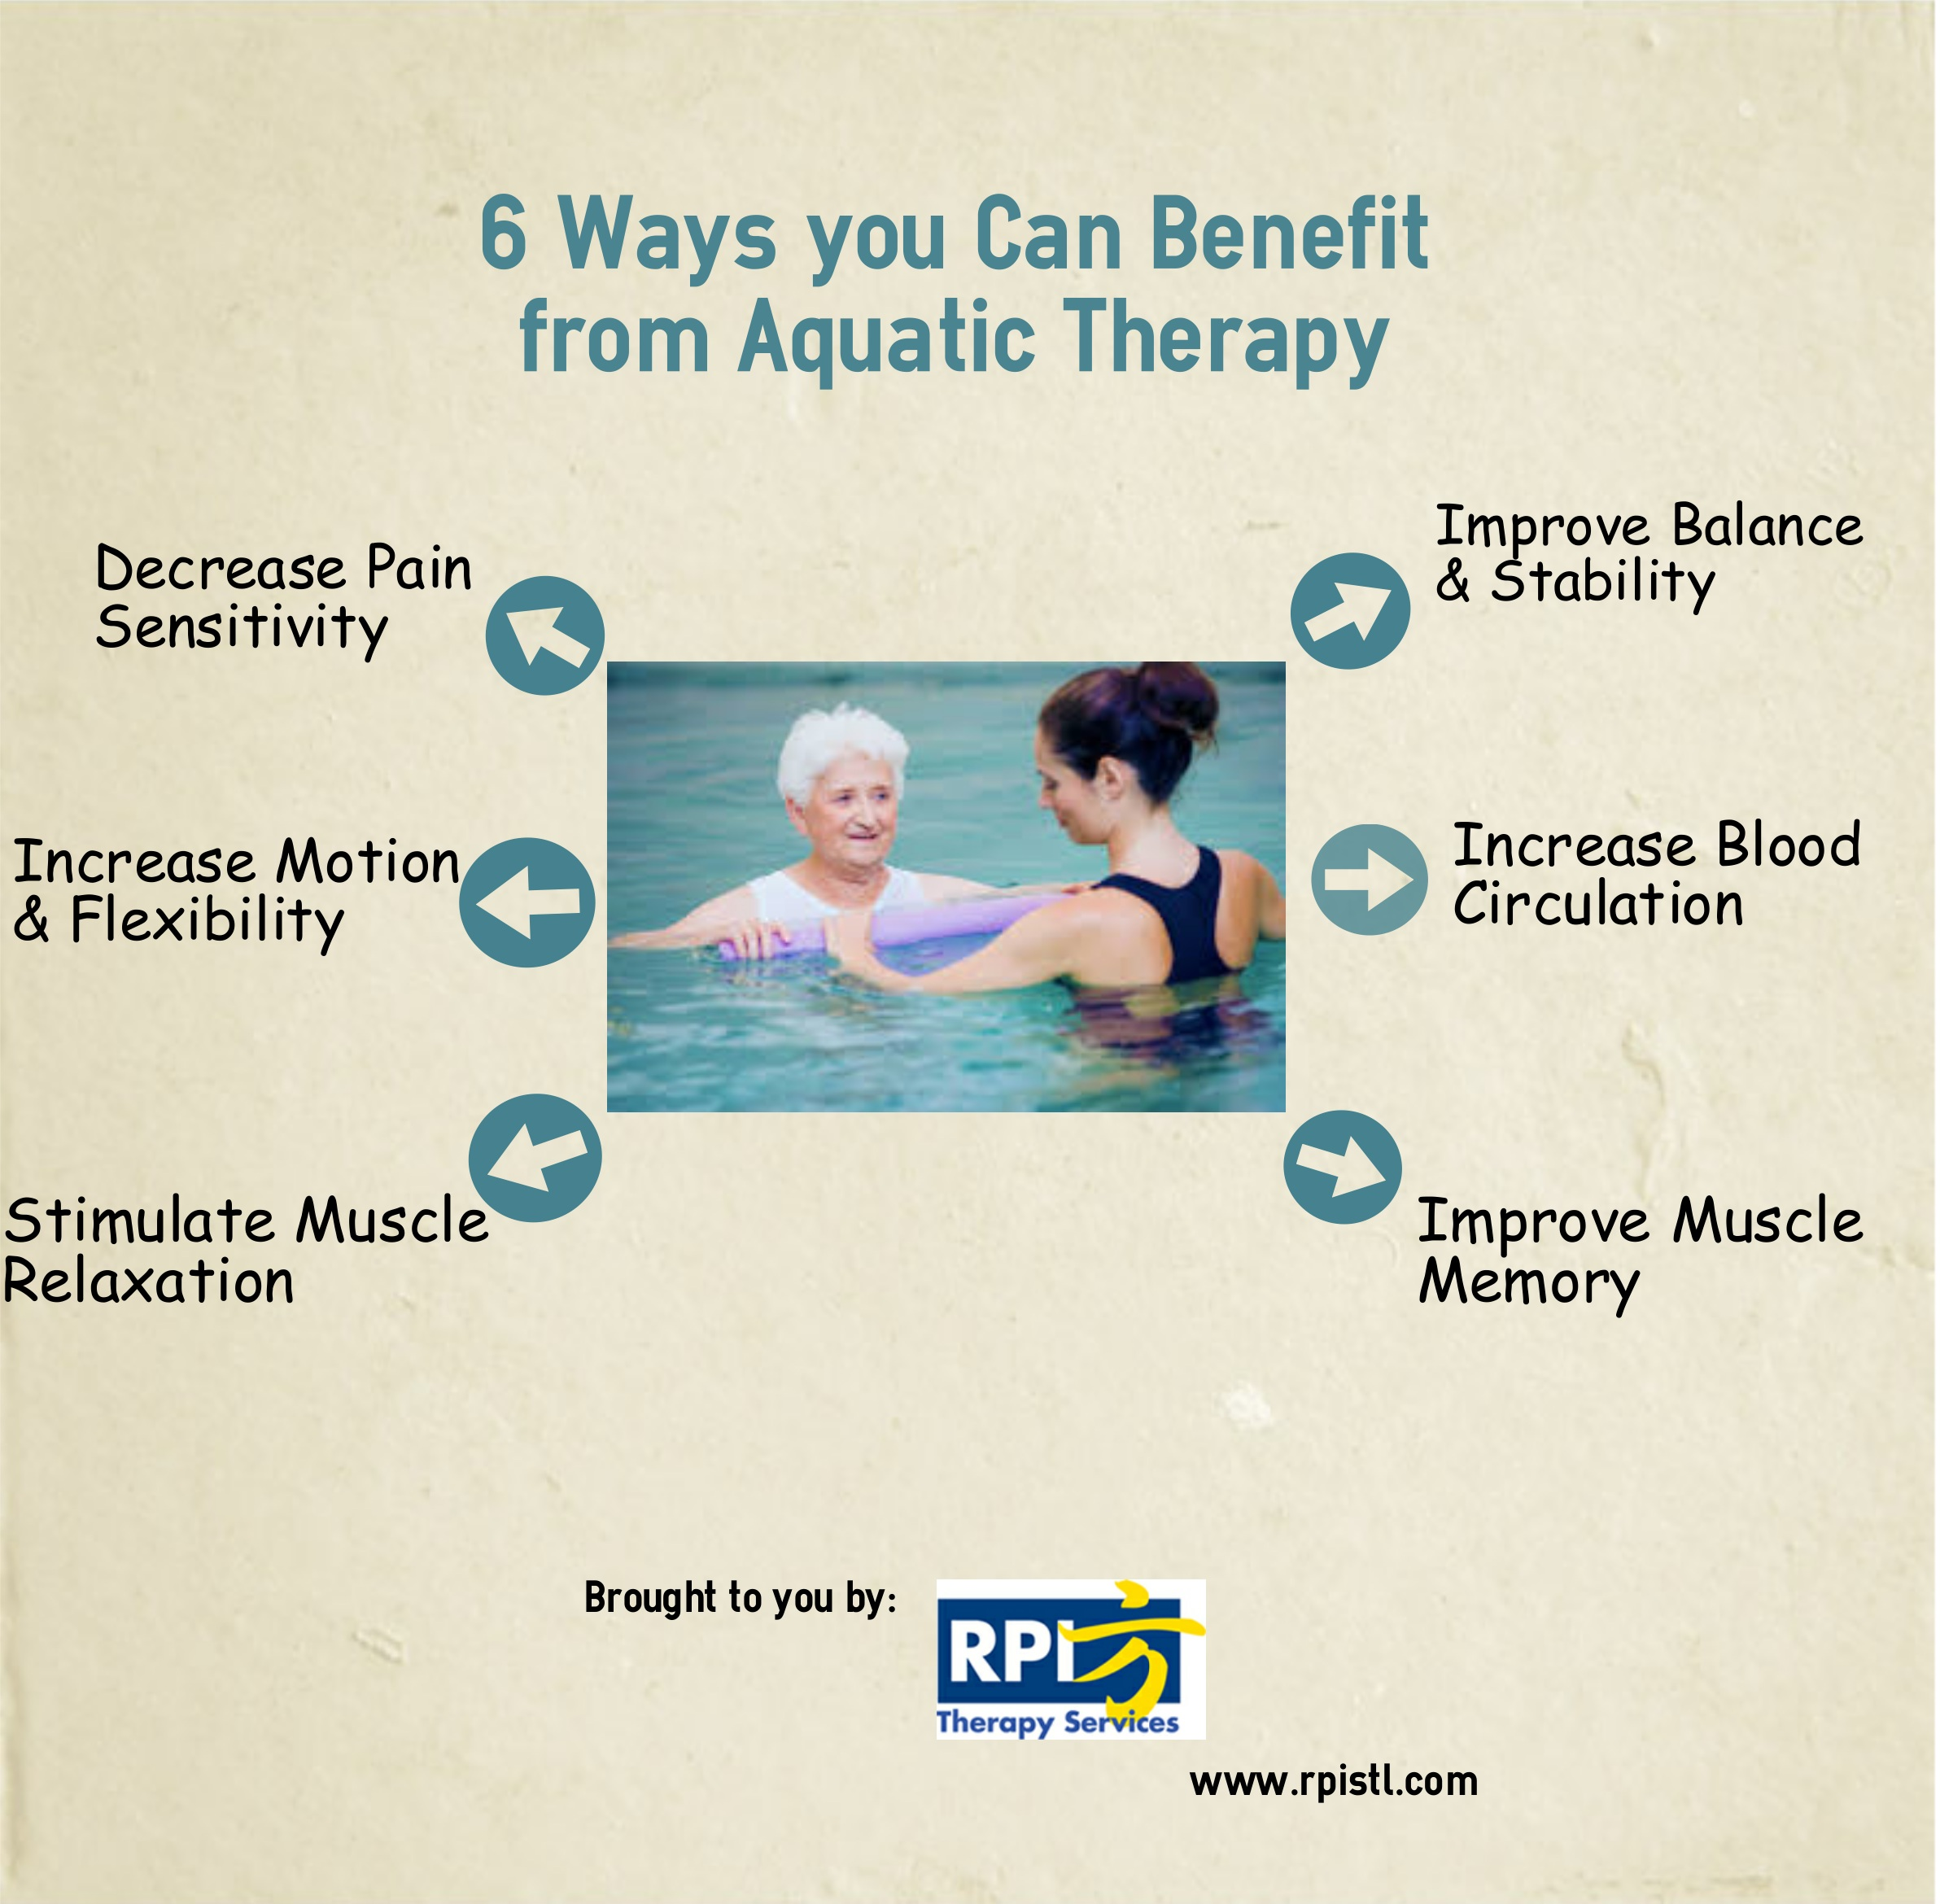 benefits of aquatic therapy The amazing benefits of water therapy and infused water in home remedies by marvin francis july 7, 2016 we all know that drinking water is one of the keys to a good health, and when the case is weight loss, water plays a major role most of us already know about the water therapy diet, but for those who don't, i will be treating both.